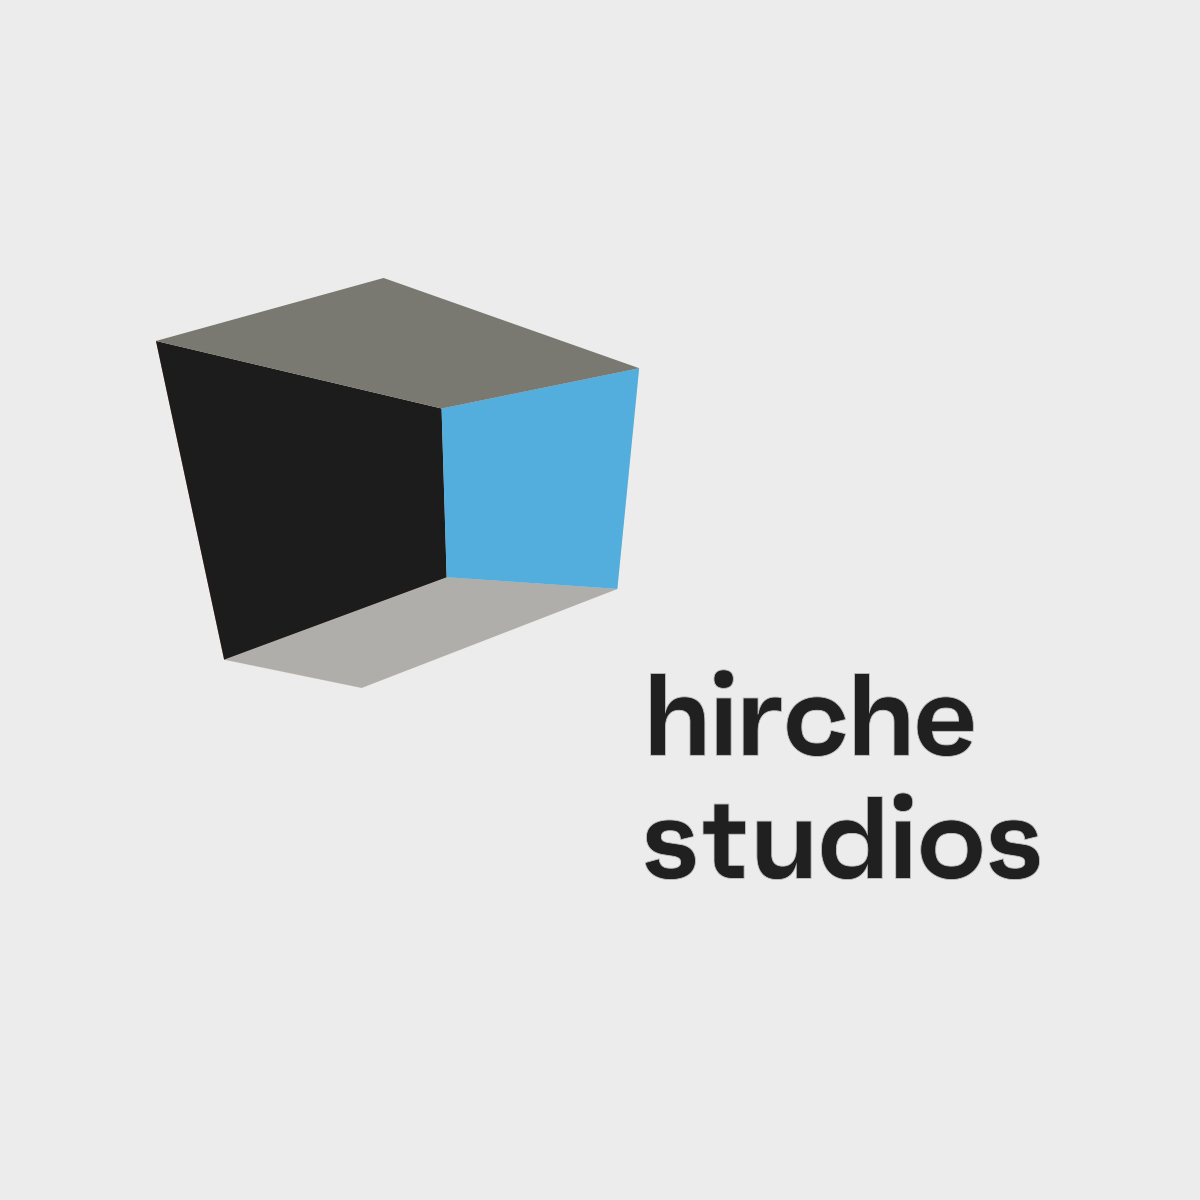 hirchestudio_logo_final_light